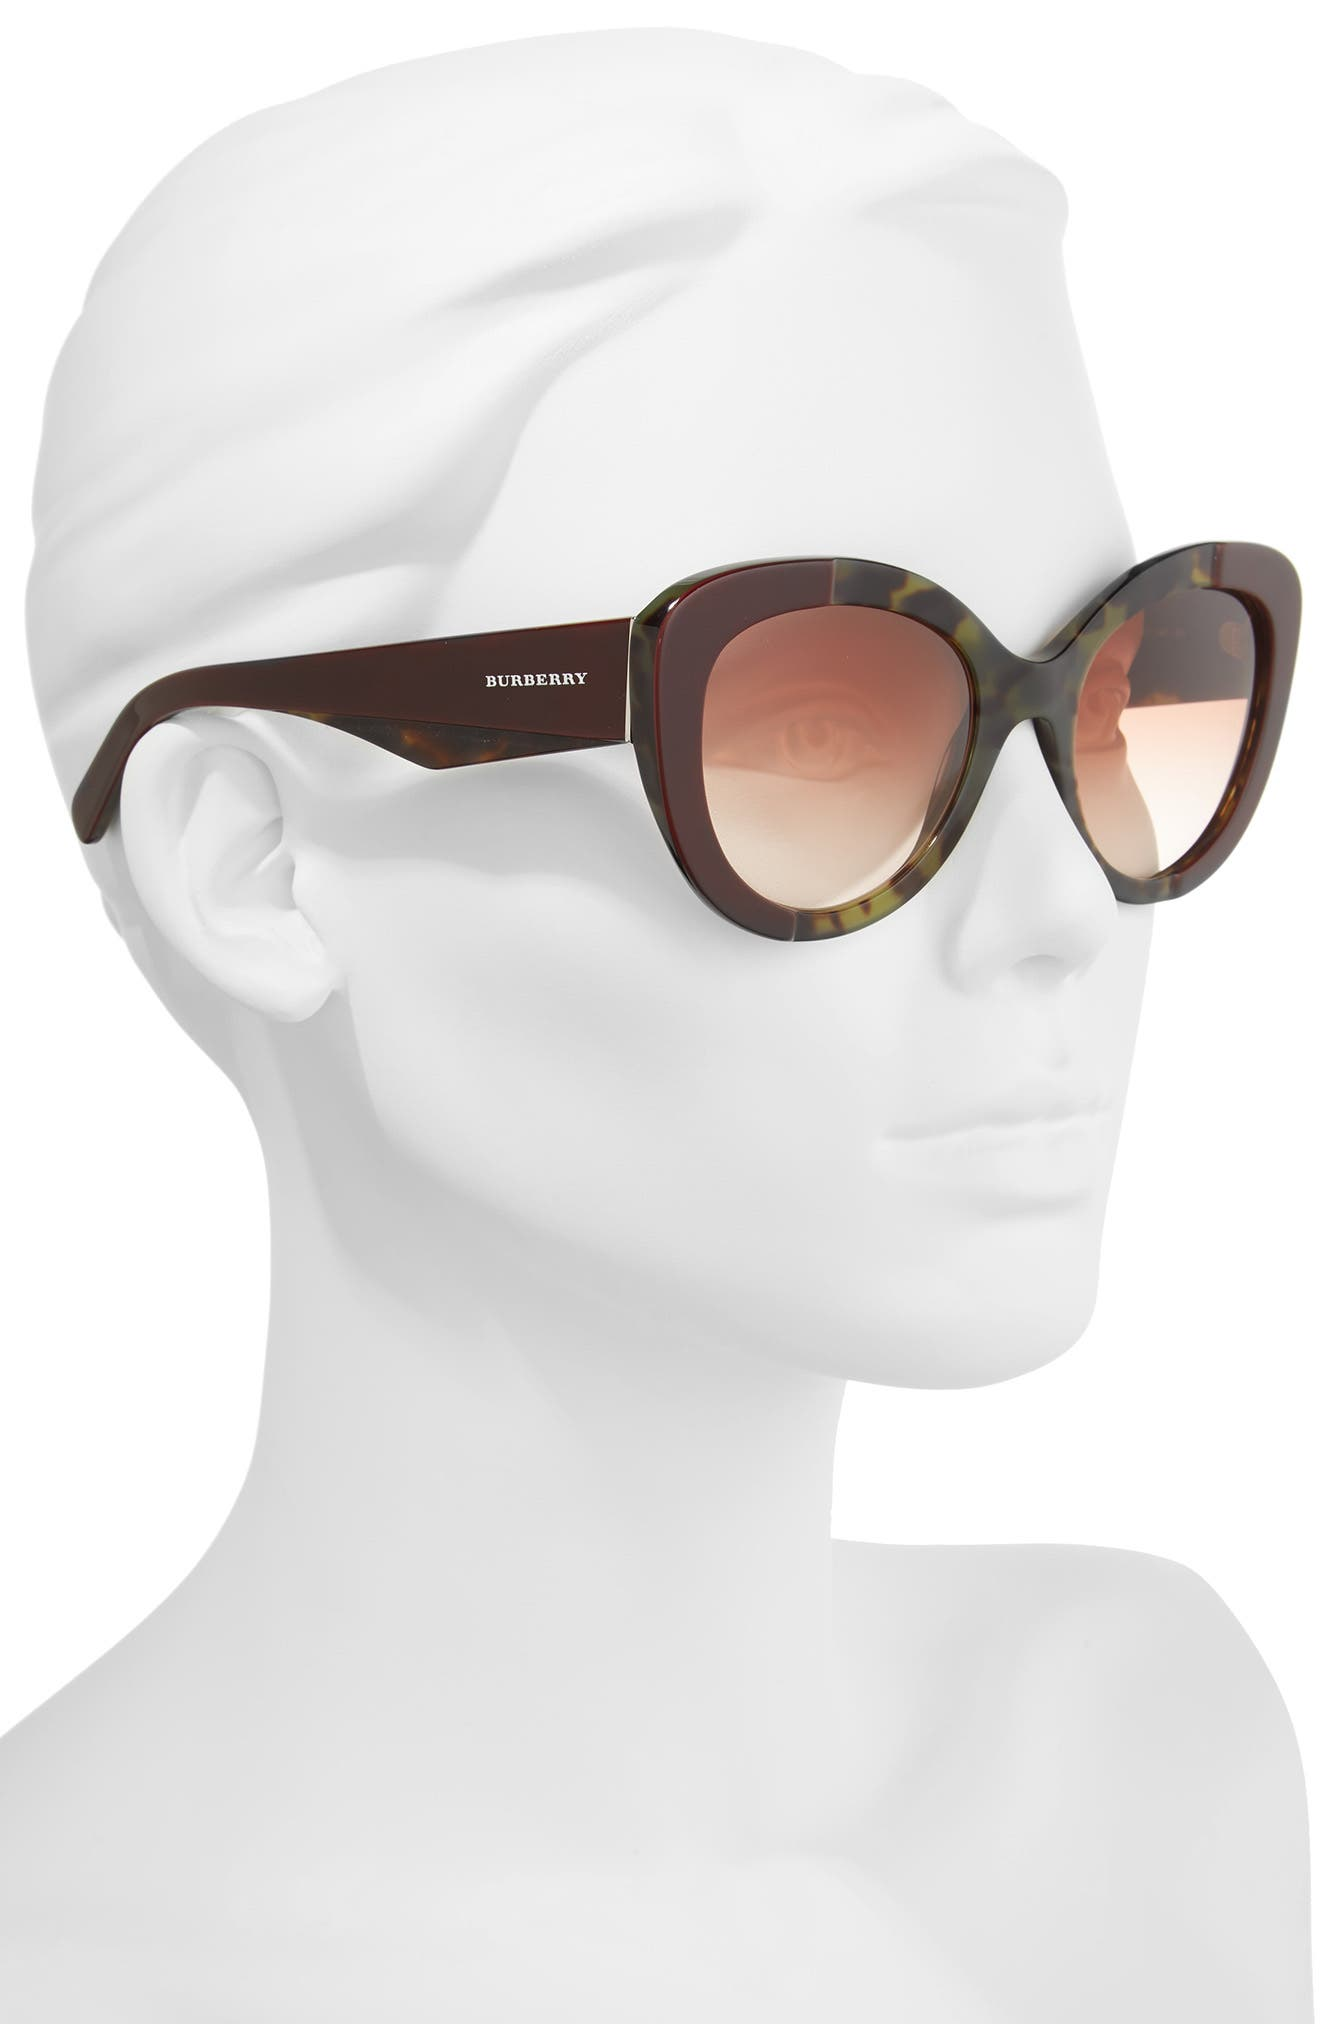 54mm Gradient Butterfly Sunglasses,                             Alternate thumbnail 2, color,                             600